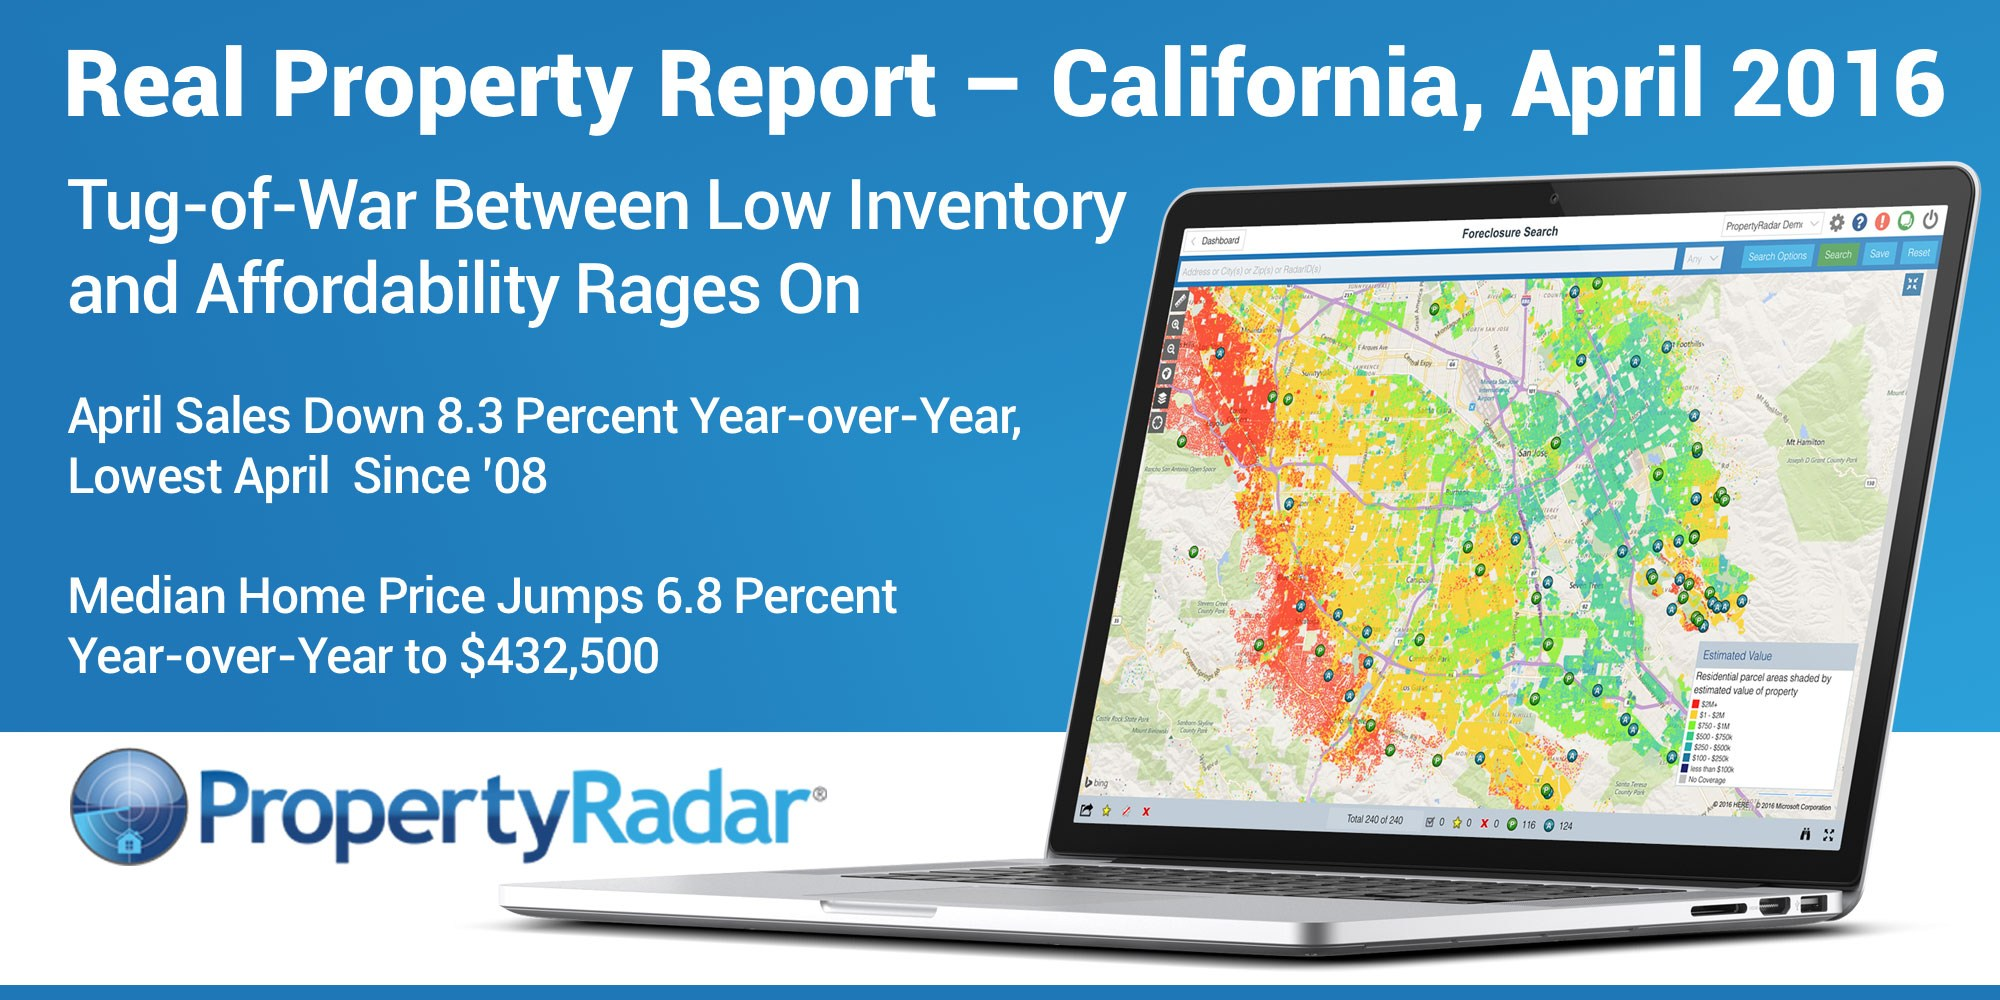 California single-family home and condominium sales were 35,978 in April 2016, an increase of 5.8% from a revised 34,002 in March 2016. PropertyRadar.